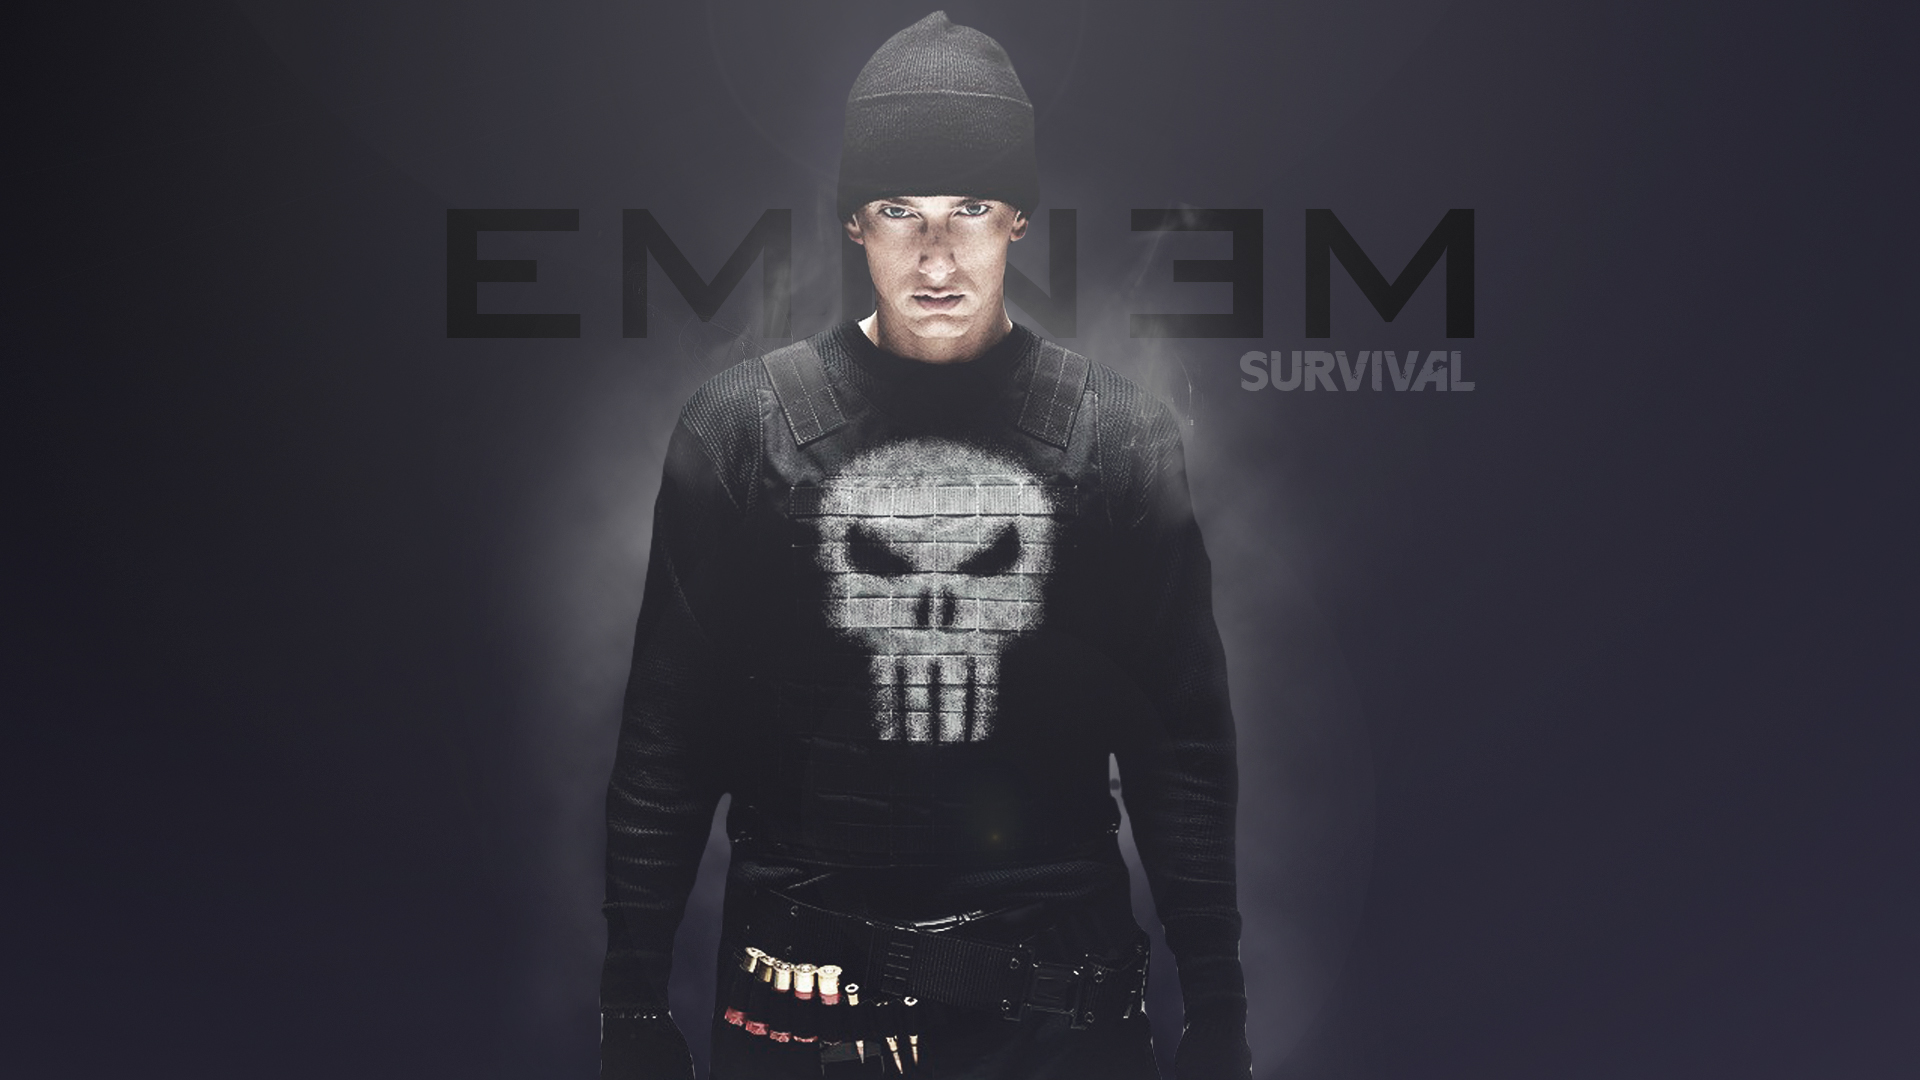 Eminem Slim Shady Punisher HD wallpaper music Wallpaper Better 1920x1080